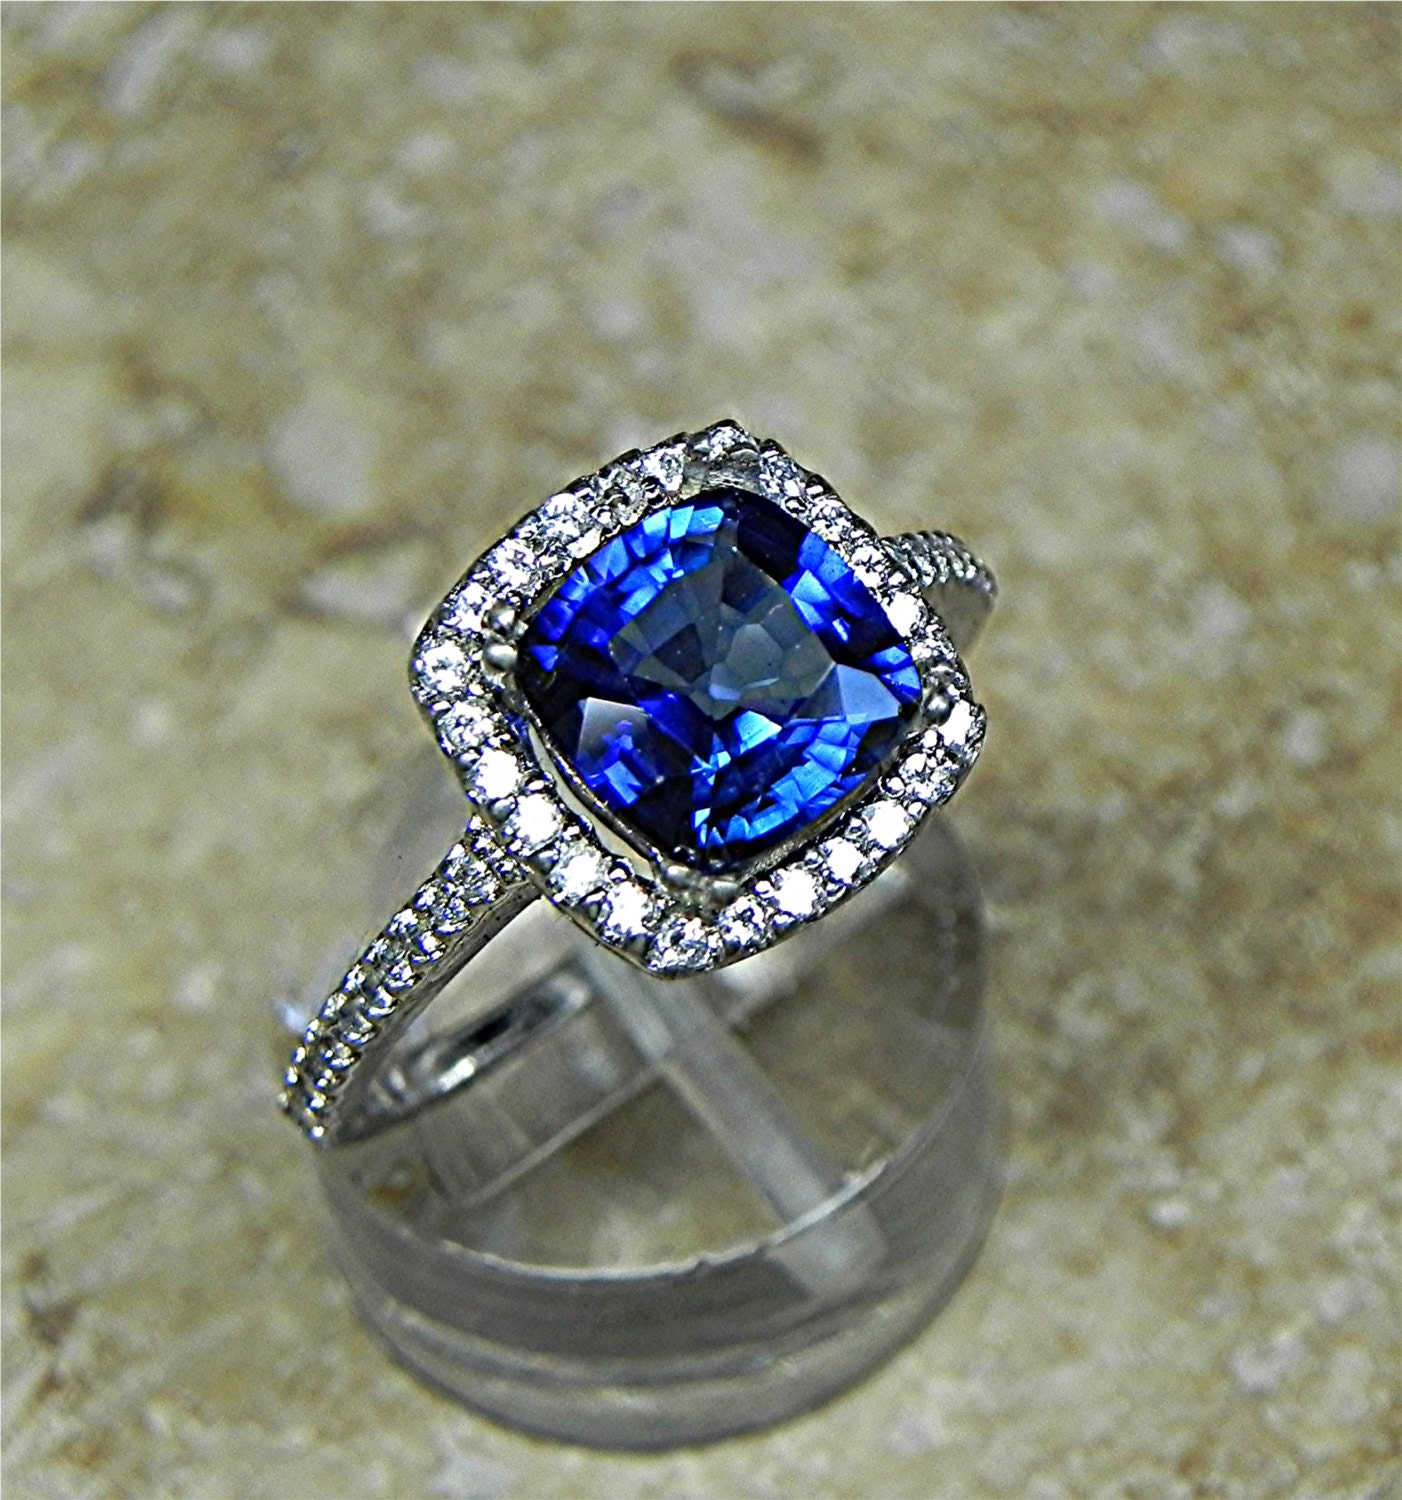 Sapphire As Engagement Ring Il Fullxfull Jv